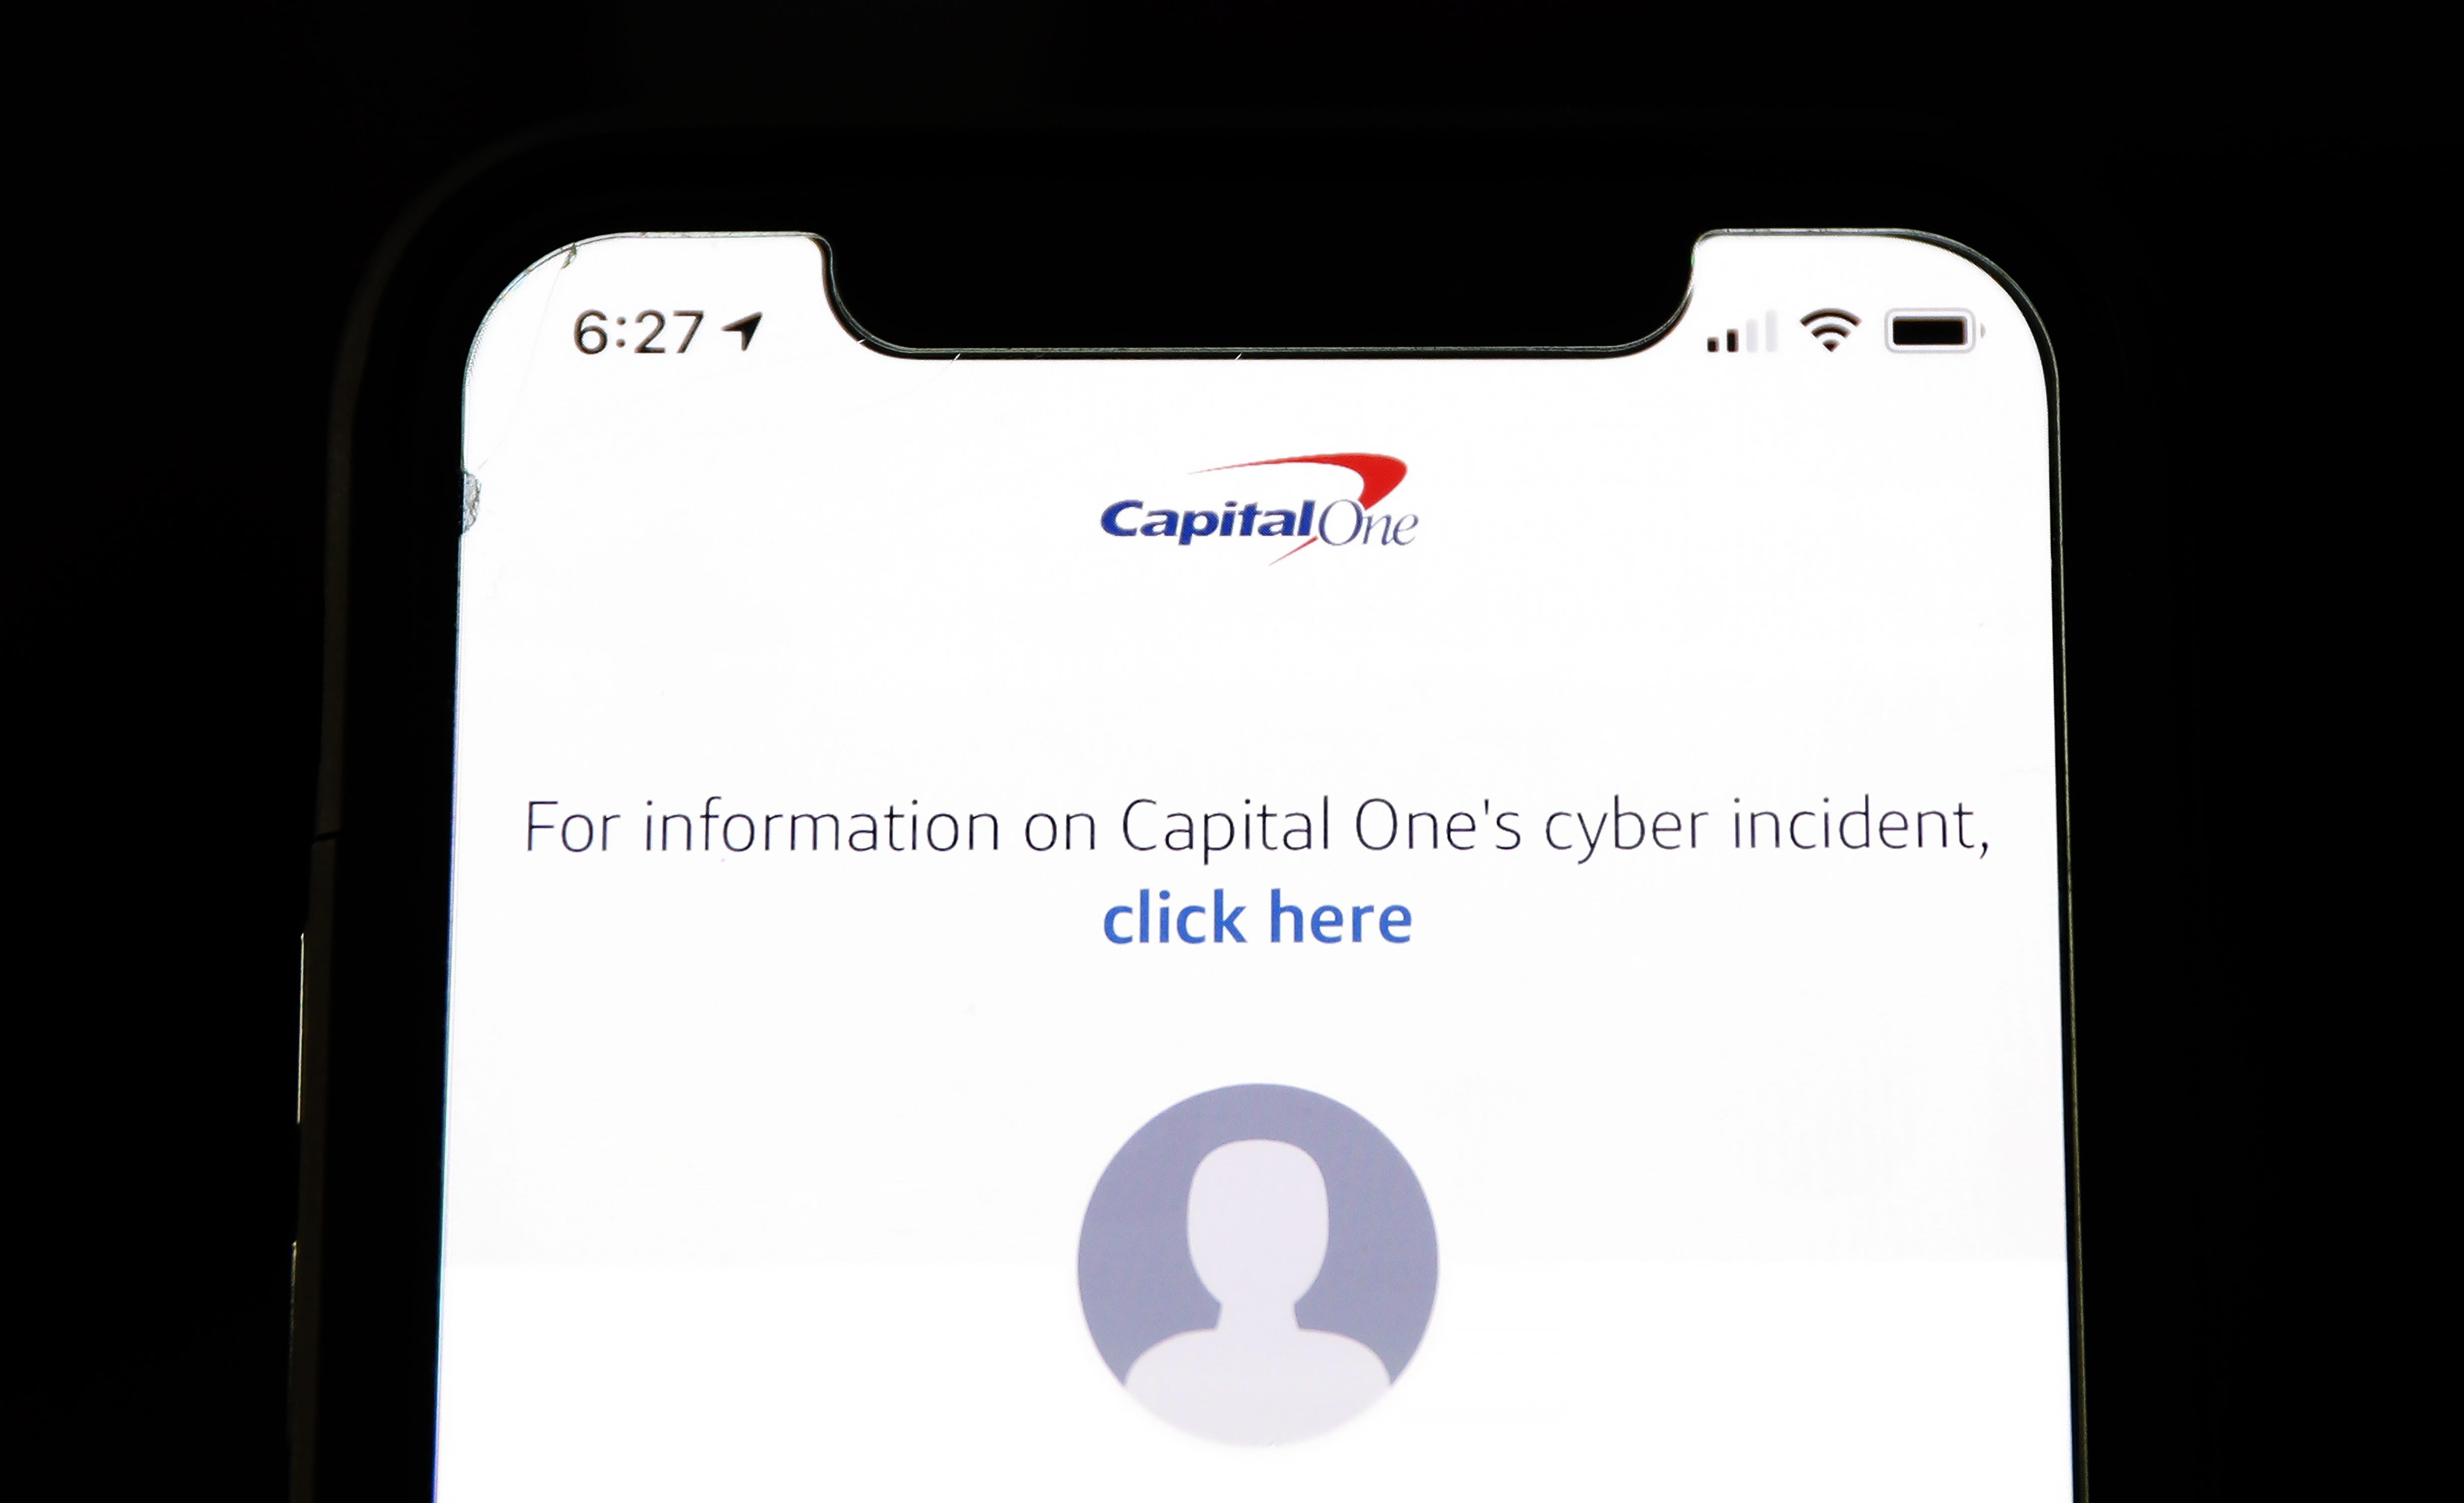 Capital One now needs to double down on technology after data breach